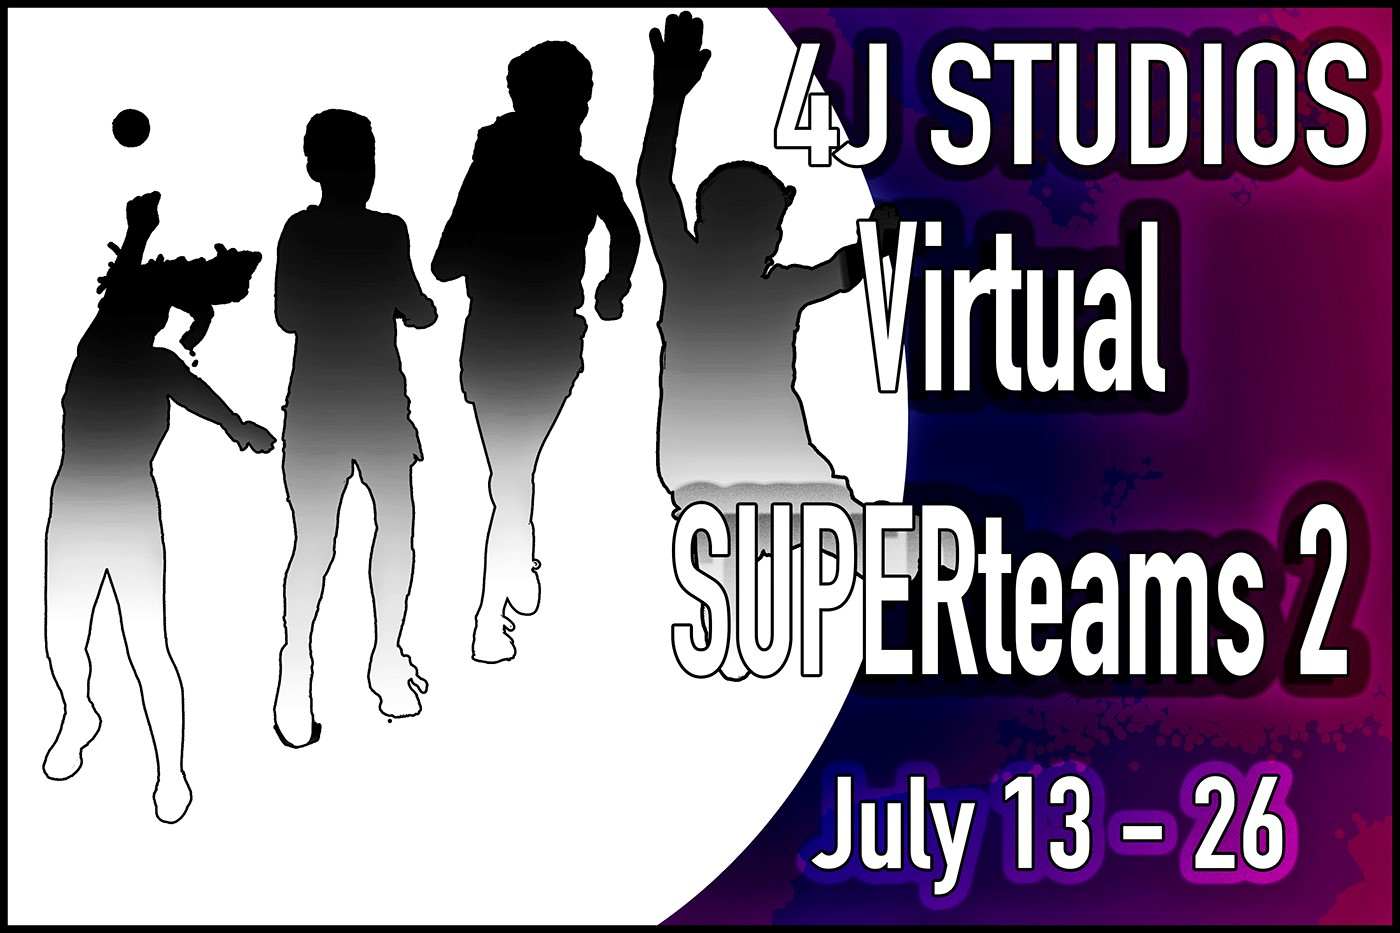 Clubs: last chance to sign-up for Virtual SUPERteams 2 - Scottish Athletics